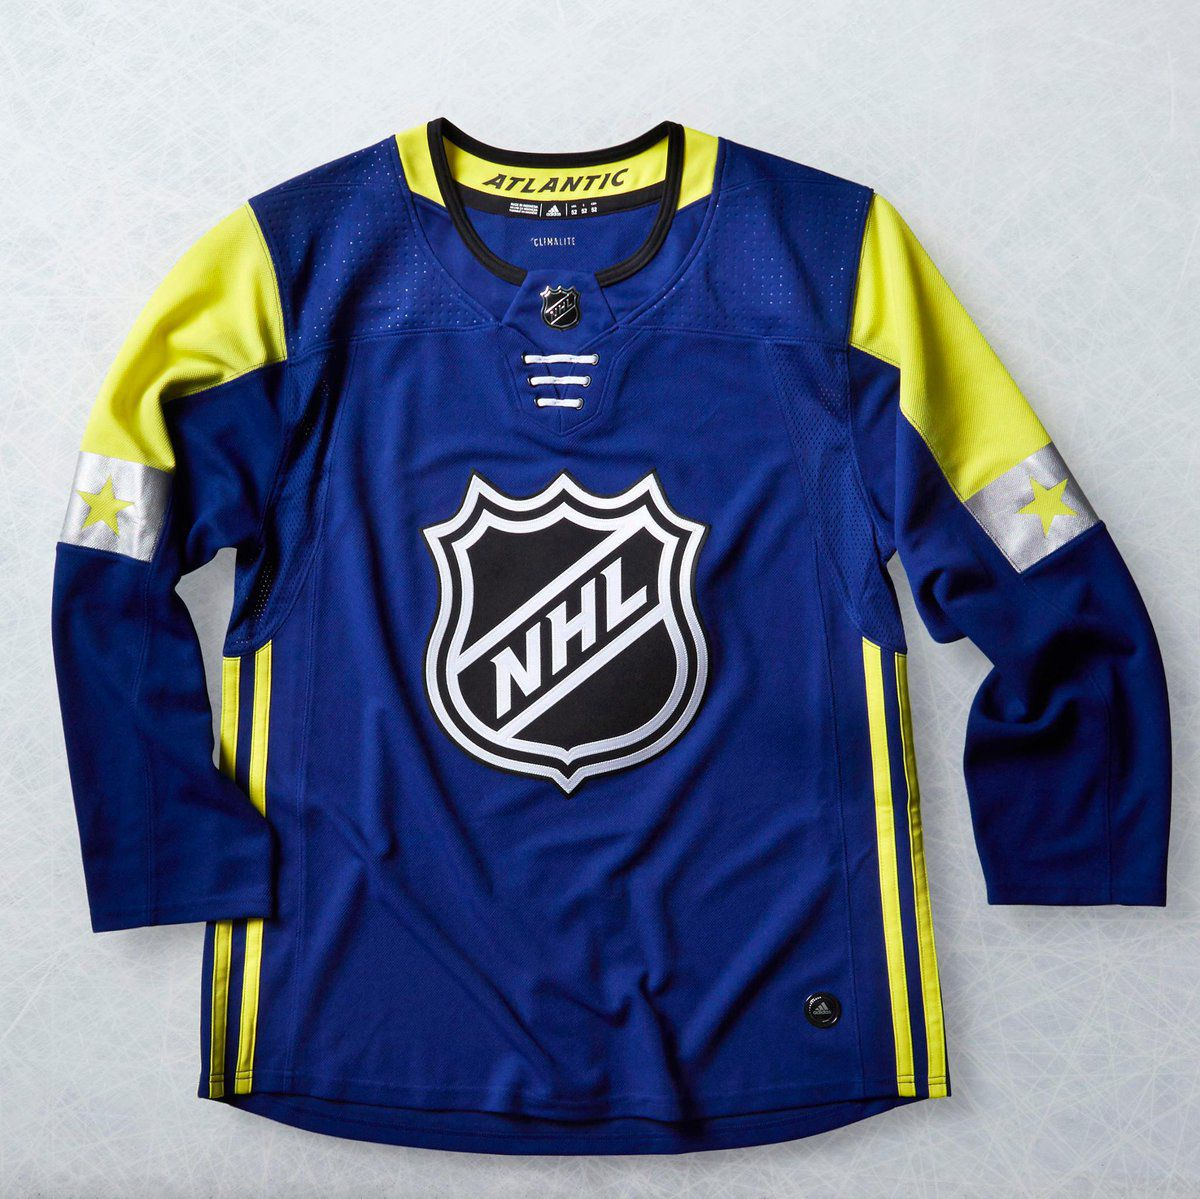 atlantic division all star jersey